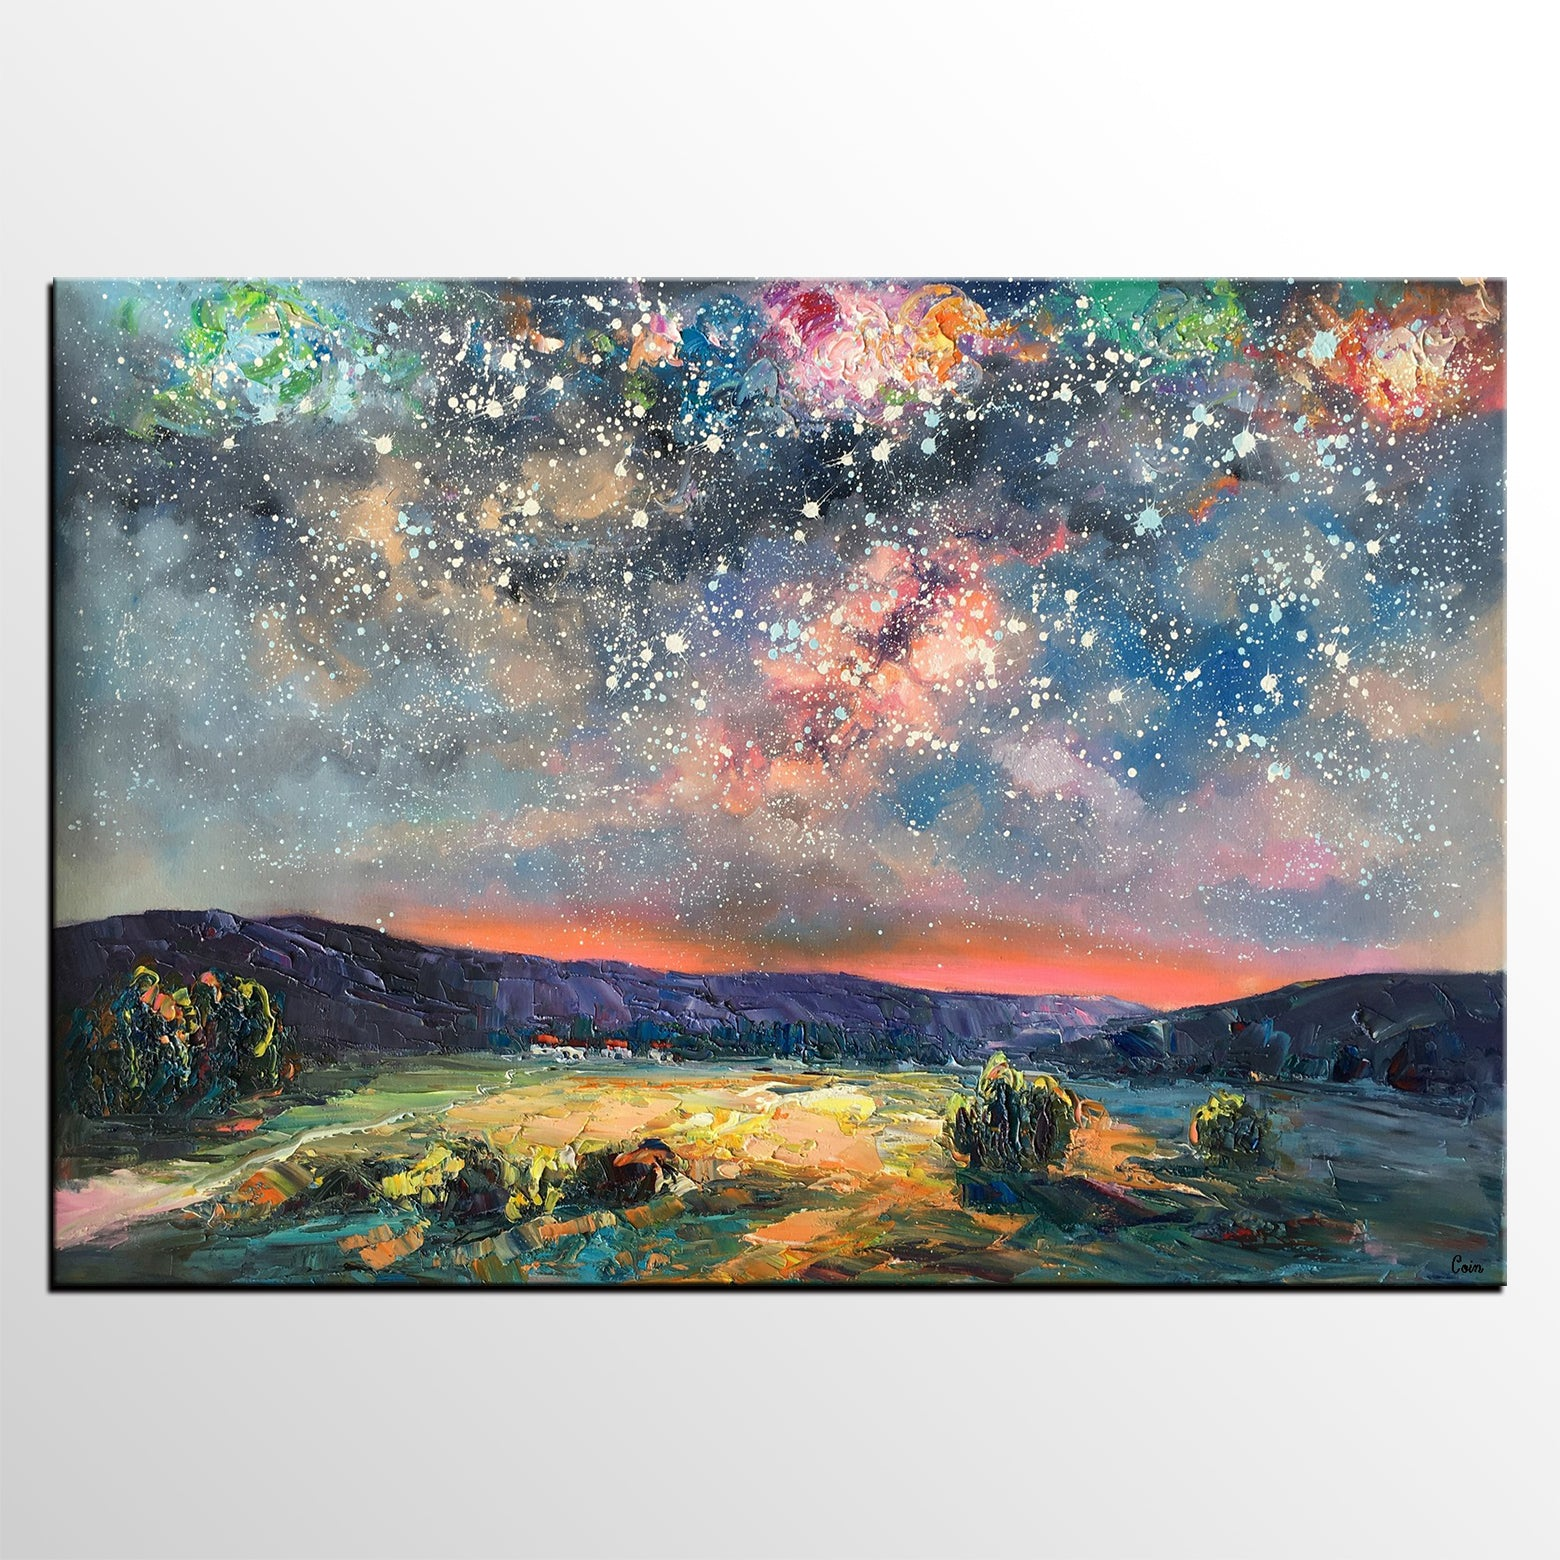 Abstract Painting, Starry Night Sky Painting, Heavy Texture Art, Impasto Painting, Custom Wall Art - artworkcanvas